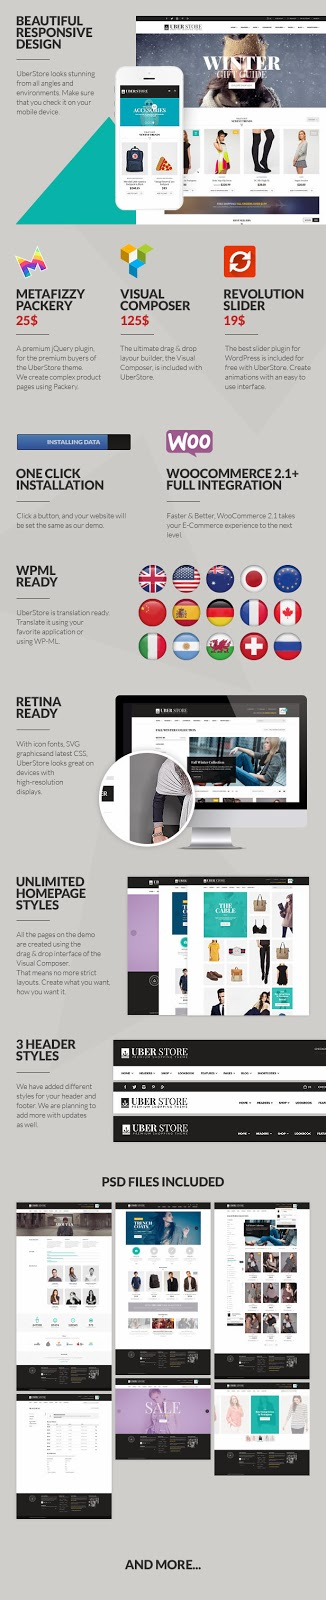 Woocommerce WordPress Theme Download